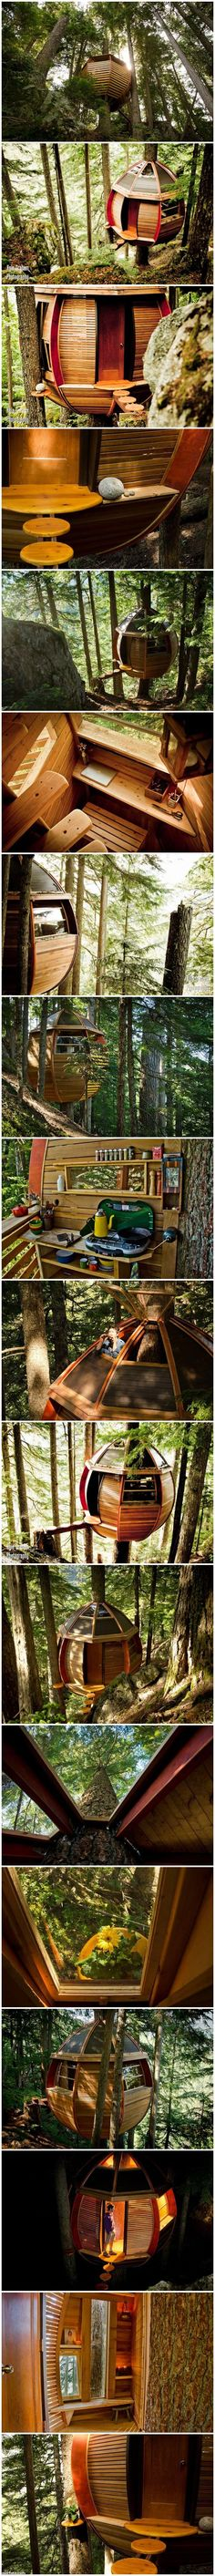 Hidden Egg Treehouse